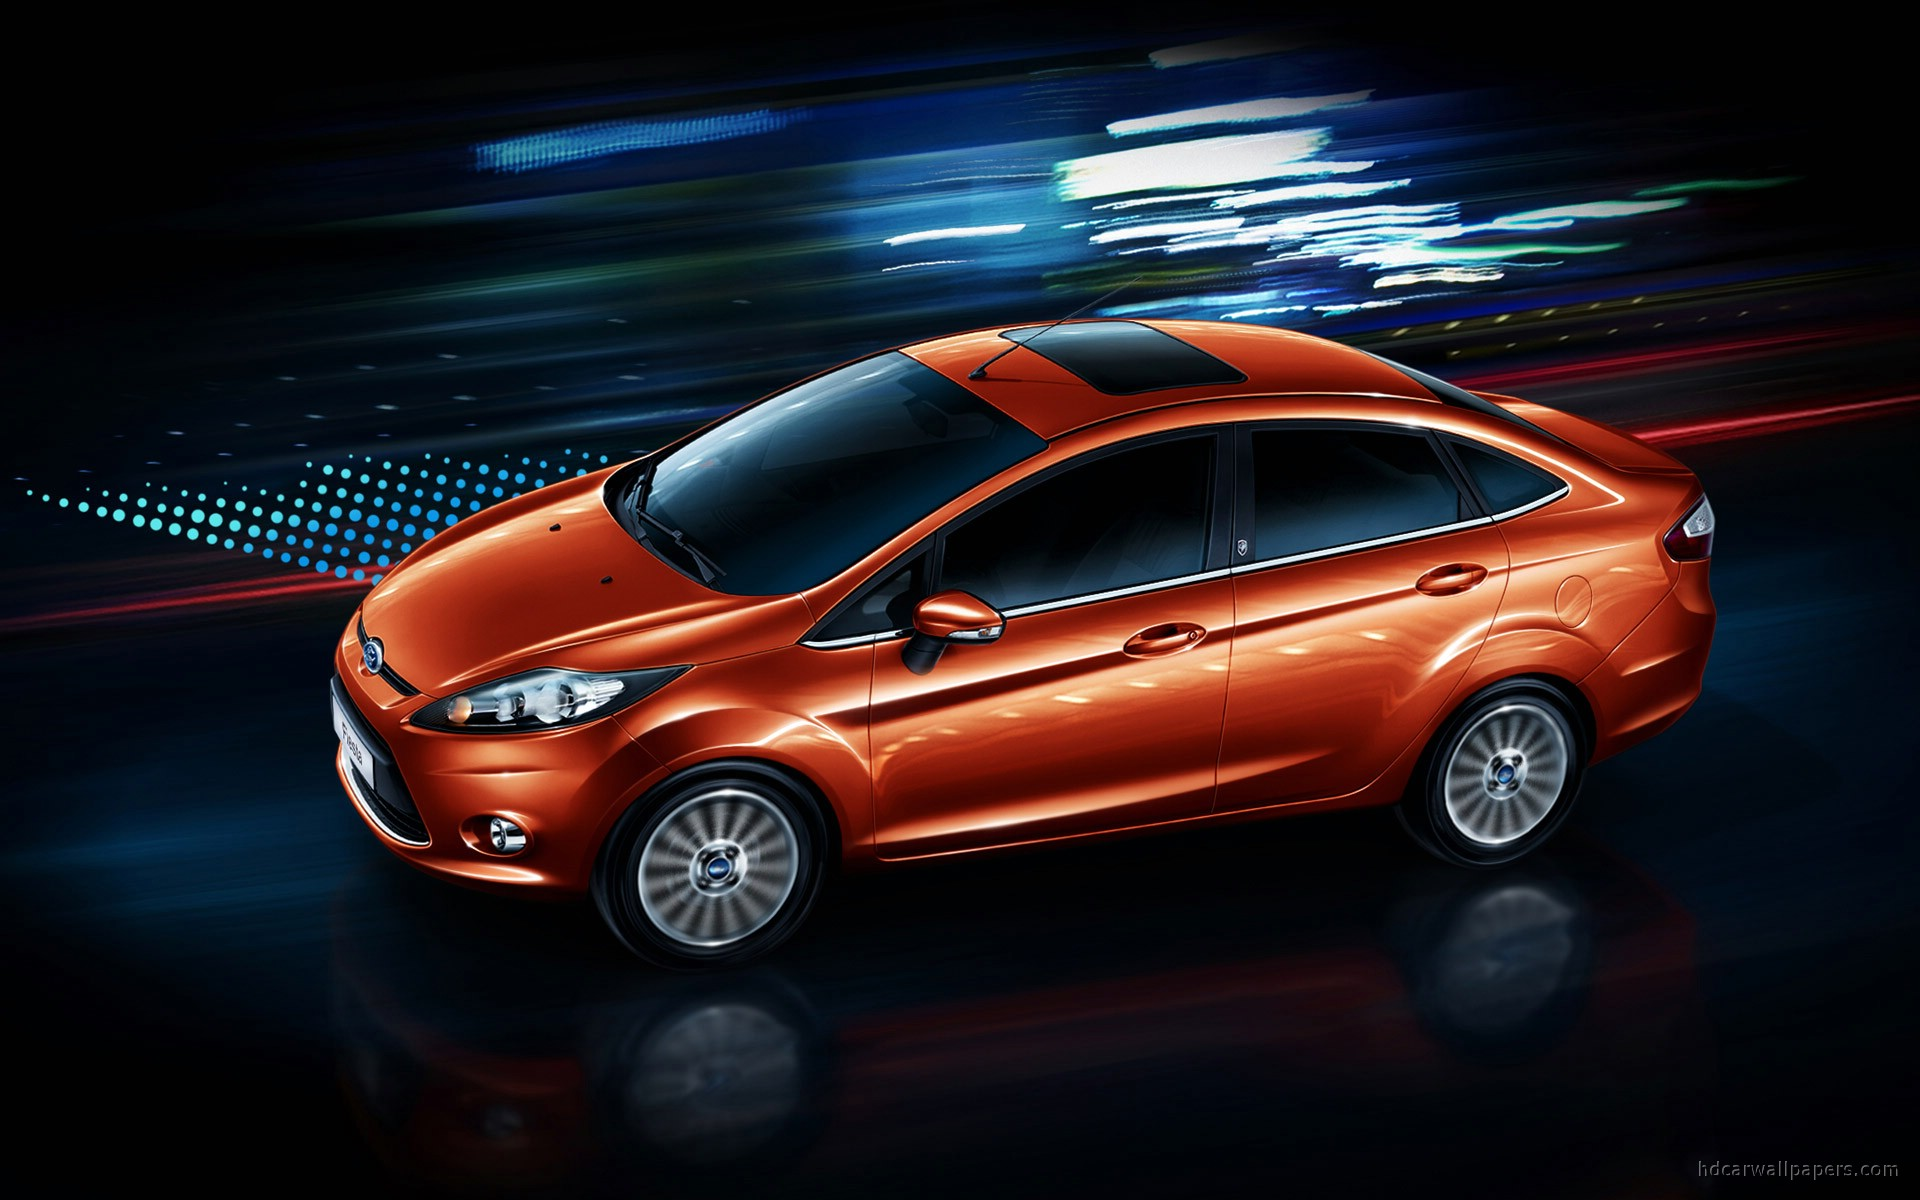 Ford Fiesta Sedan Wallpaper Hd Car Wallpapers Id 646